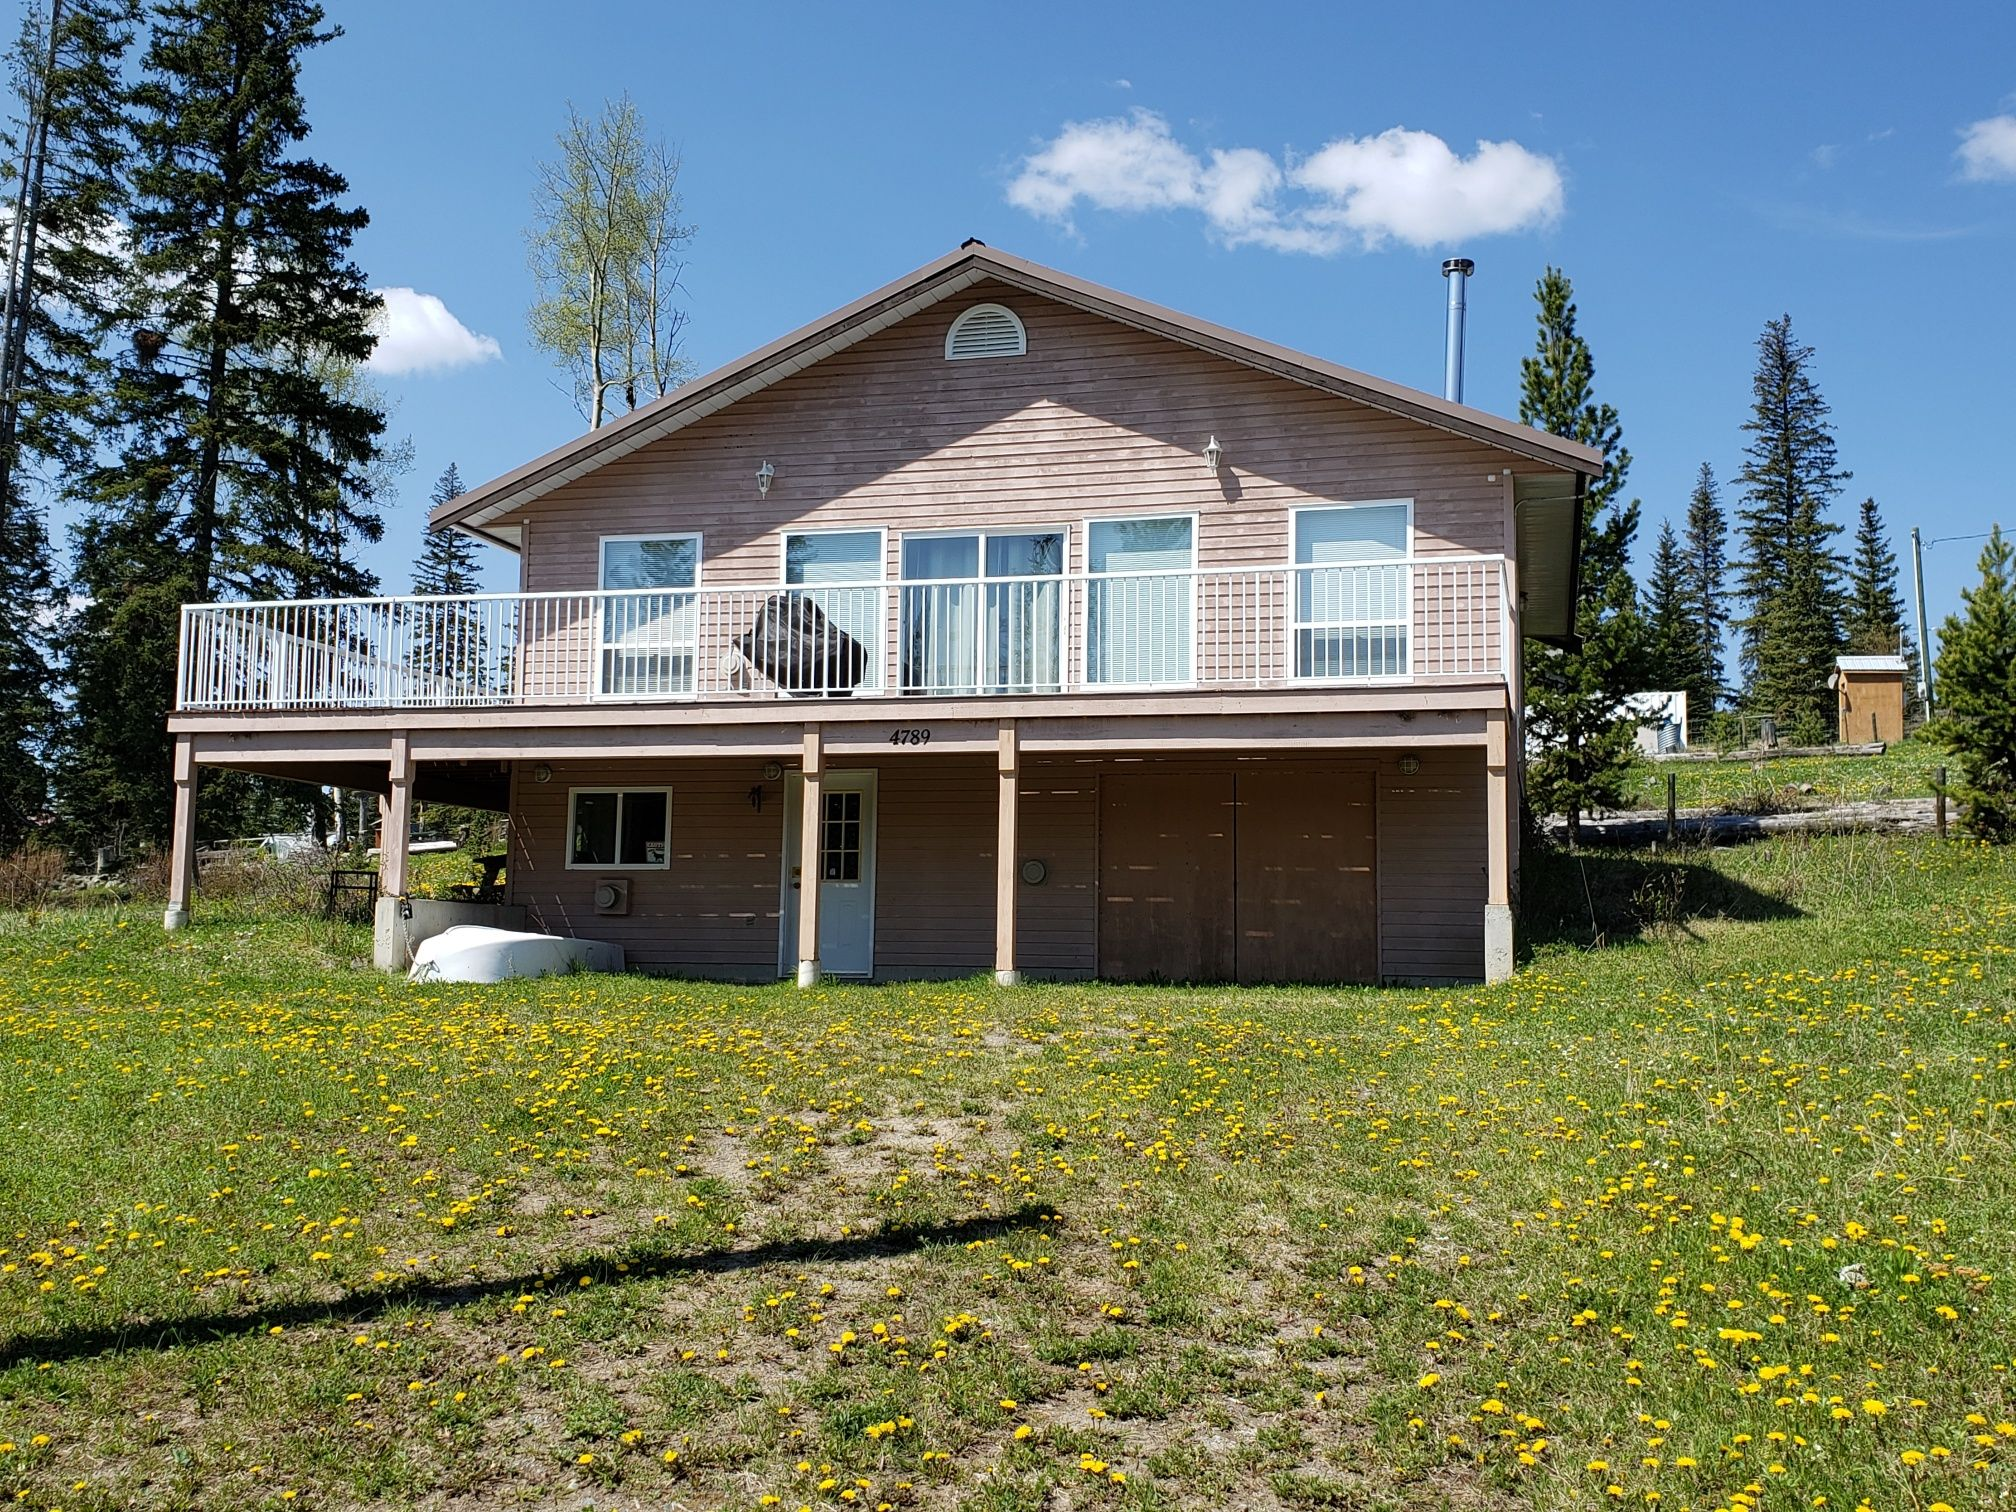 Photo 12: Photos: 4789 Atwater Road in : Logan Lake House for sale (Kamloops)  : MLS®# 157075